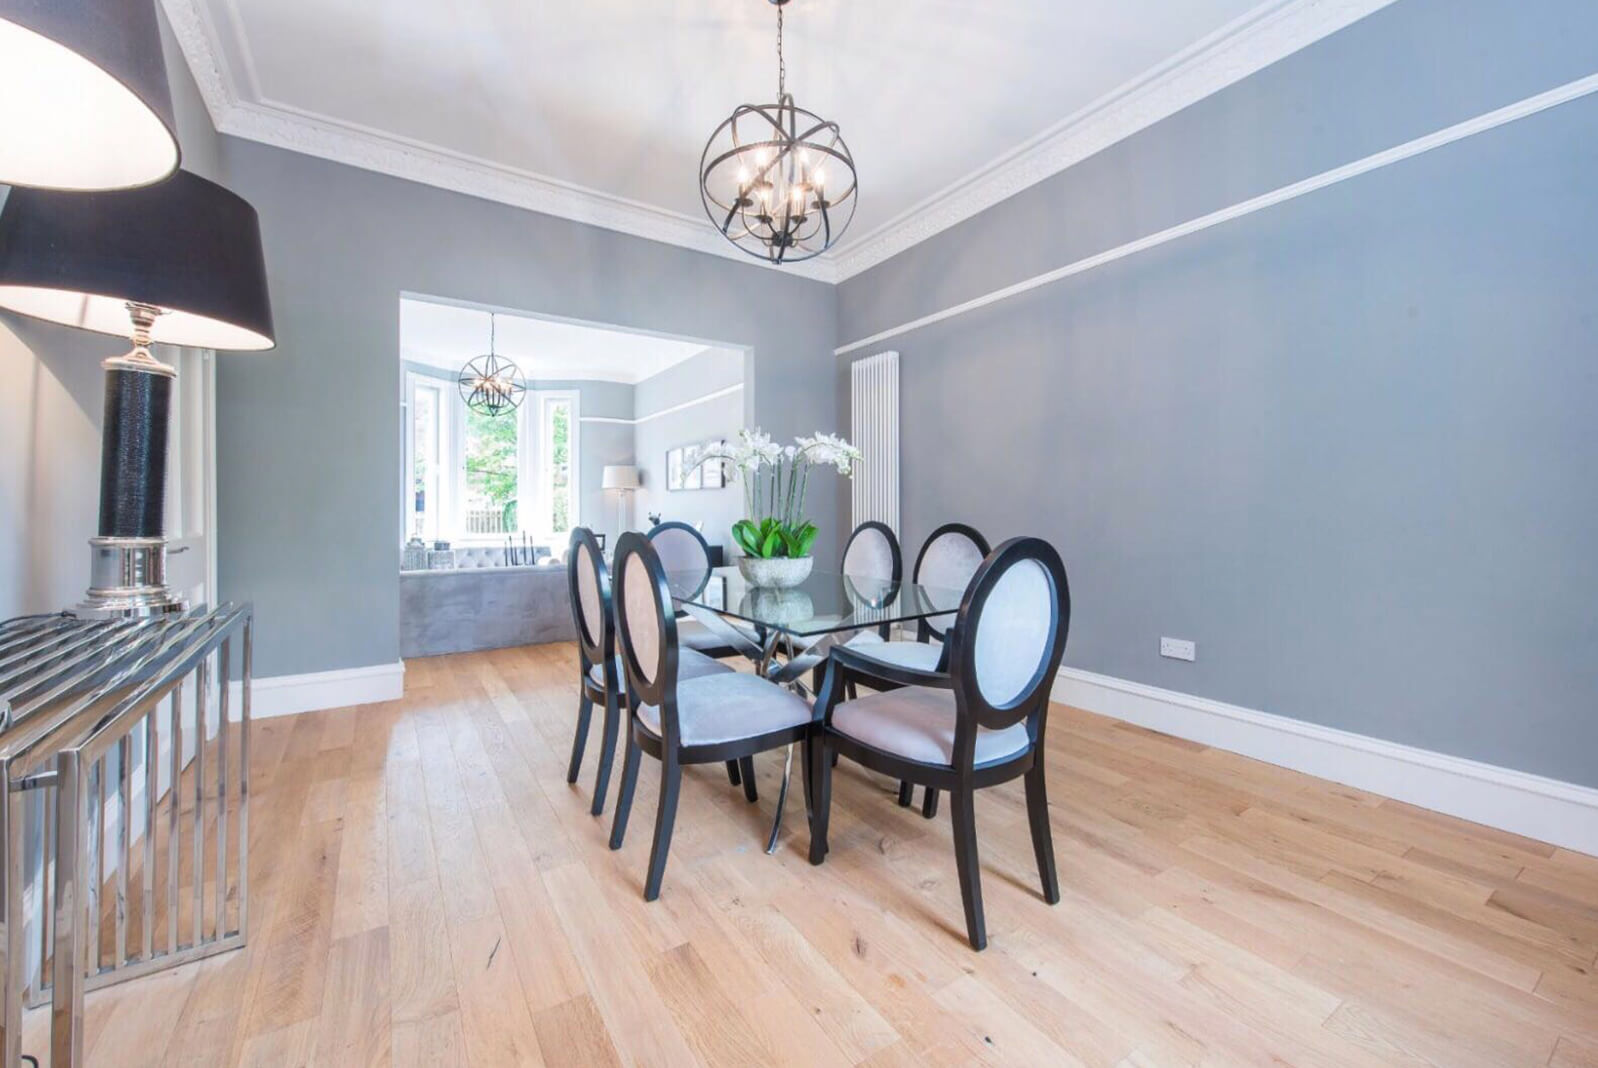 Large dining area with glass table and 6 dining chairs. Modern console table with two lamps. View of lounge area with wooden flooring throughout.